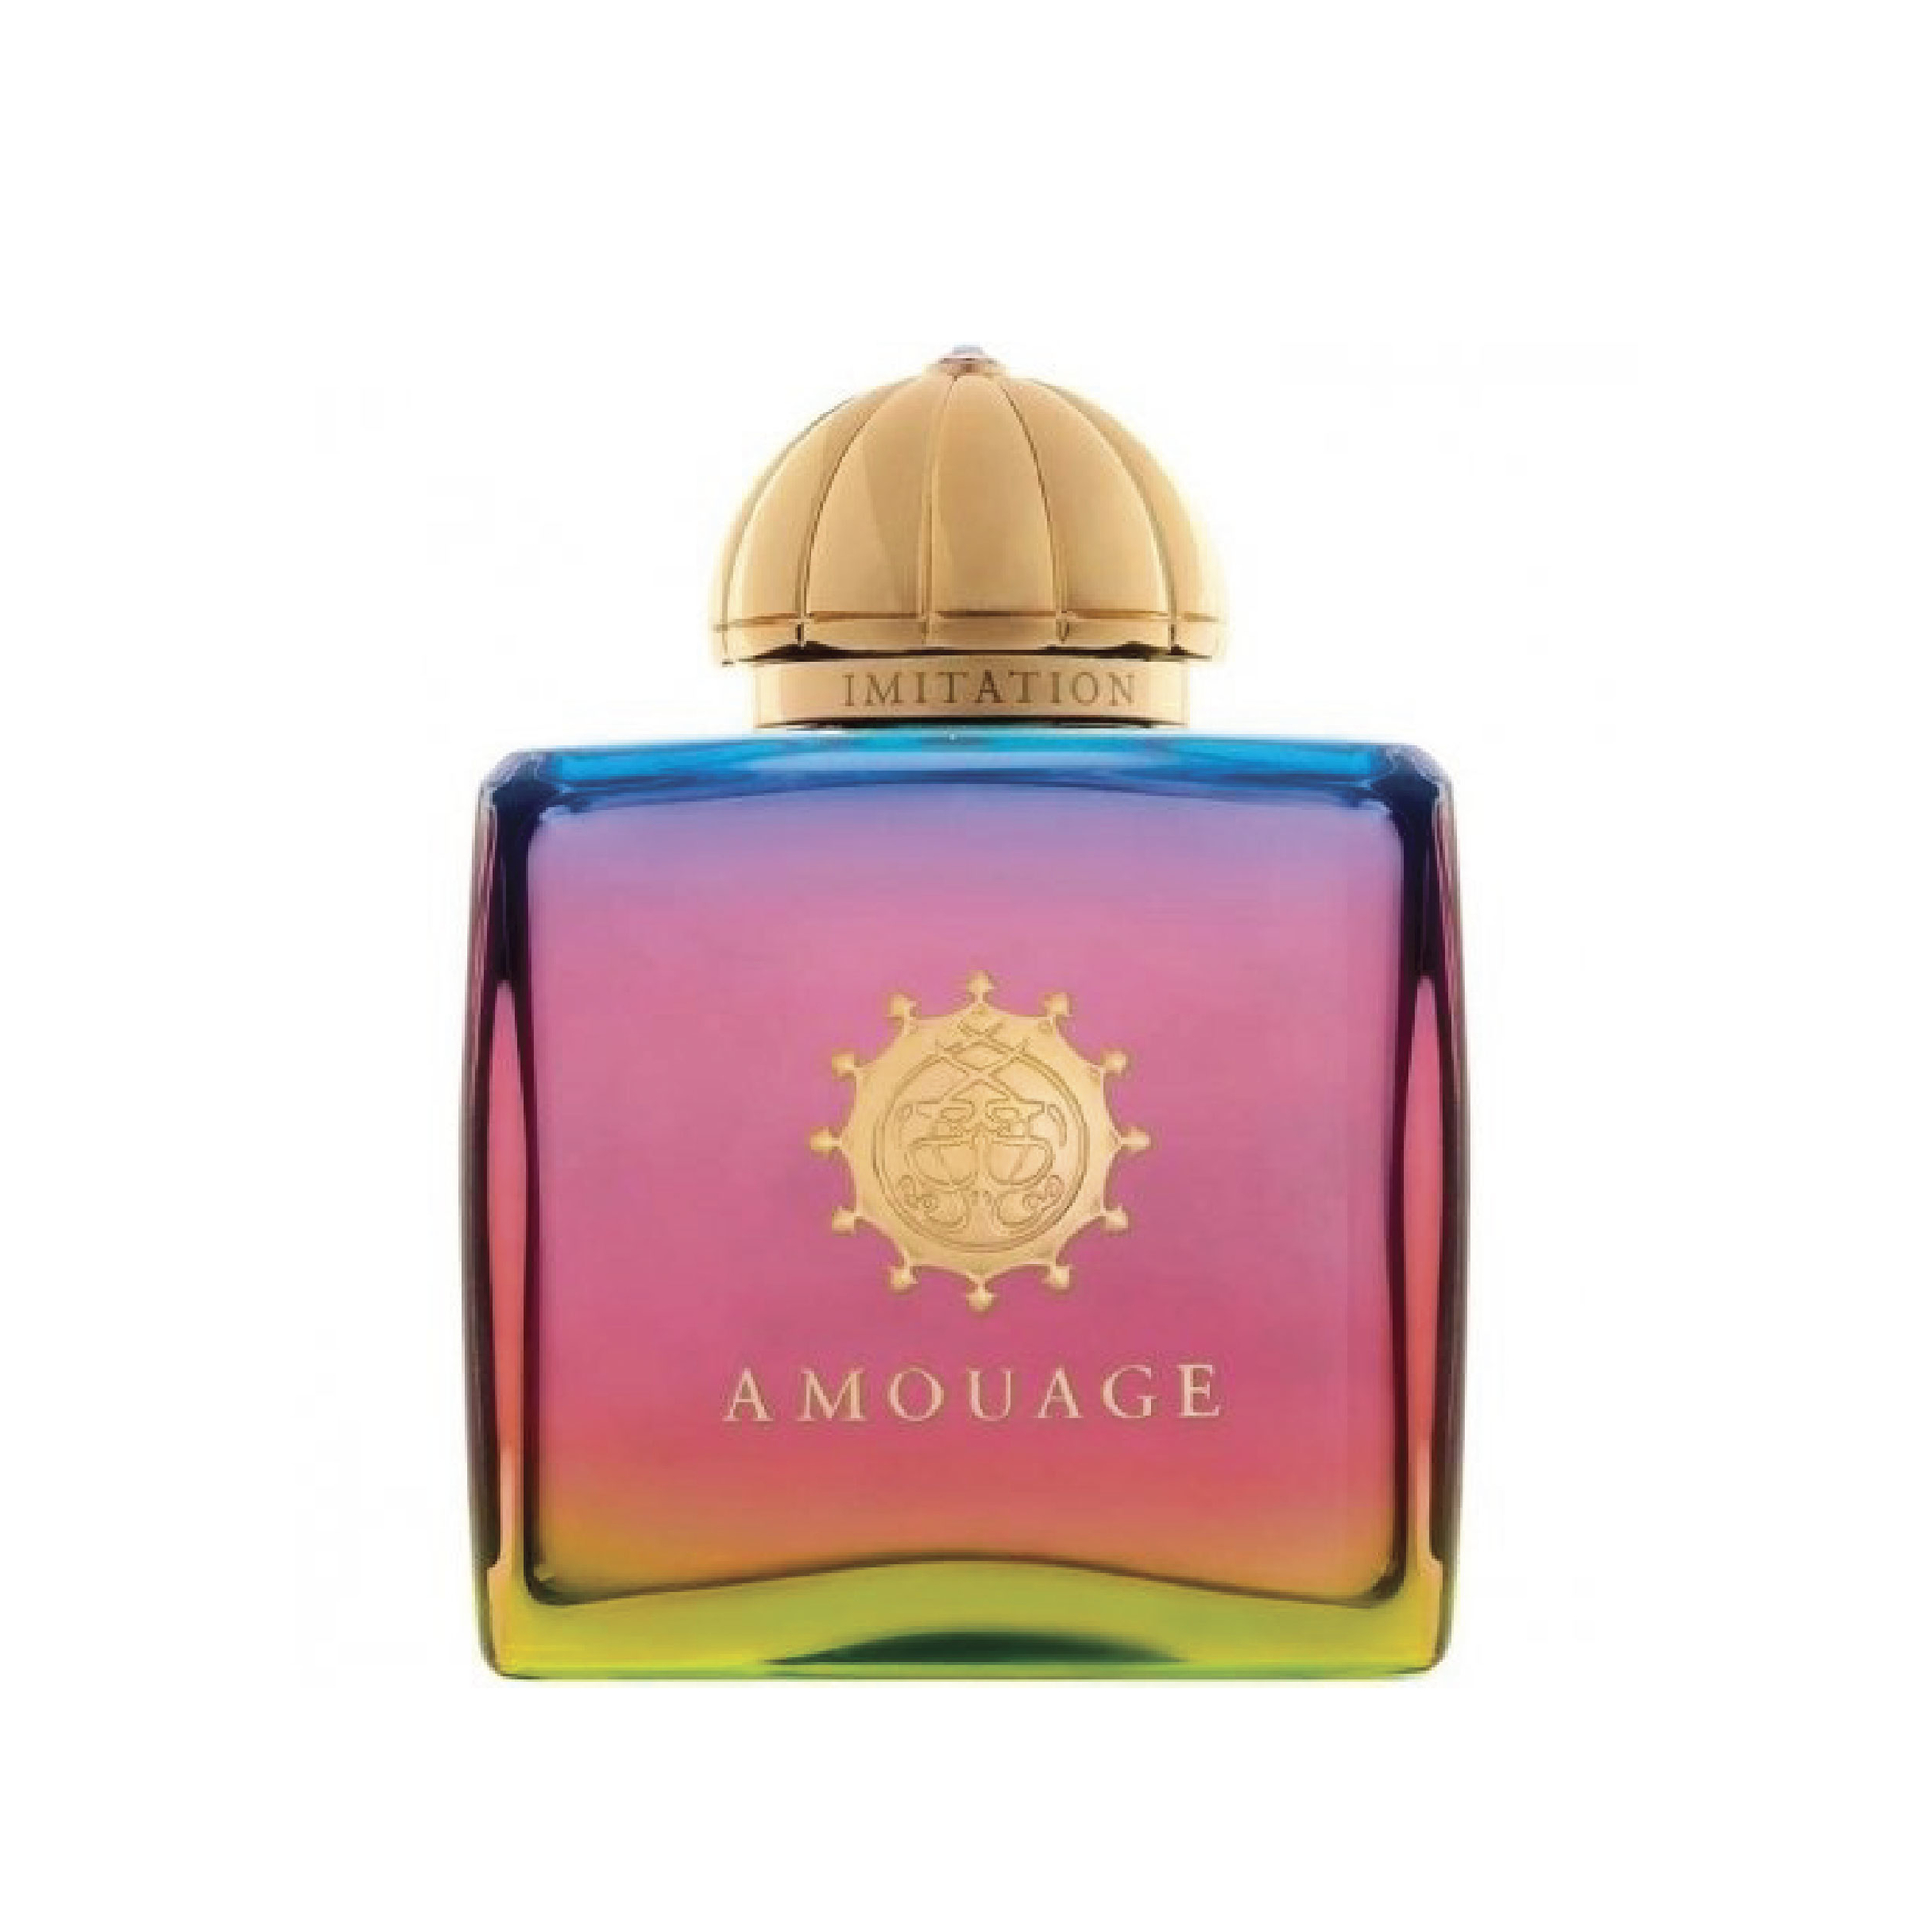 import_amouage-23.jpg